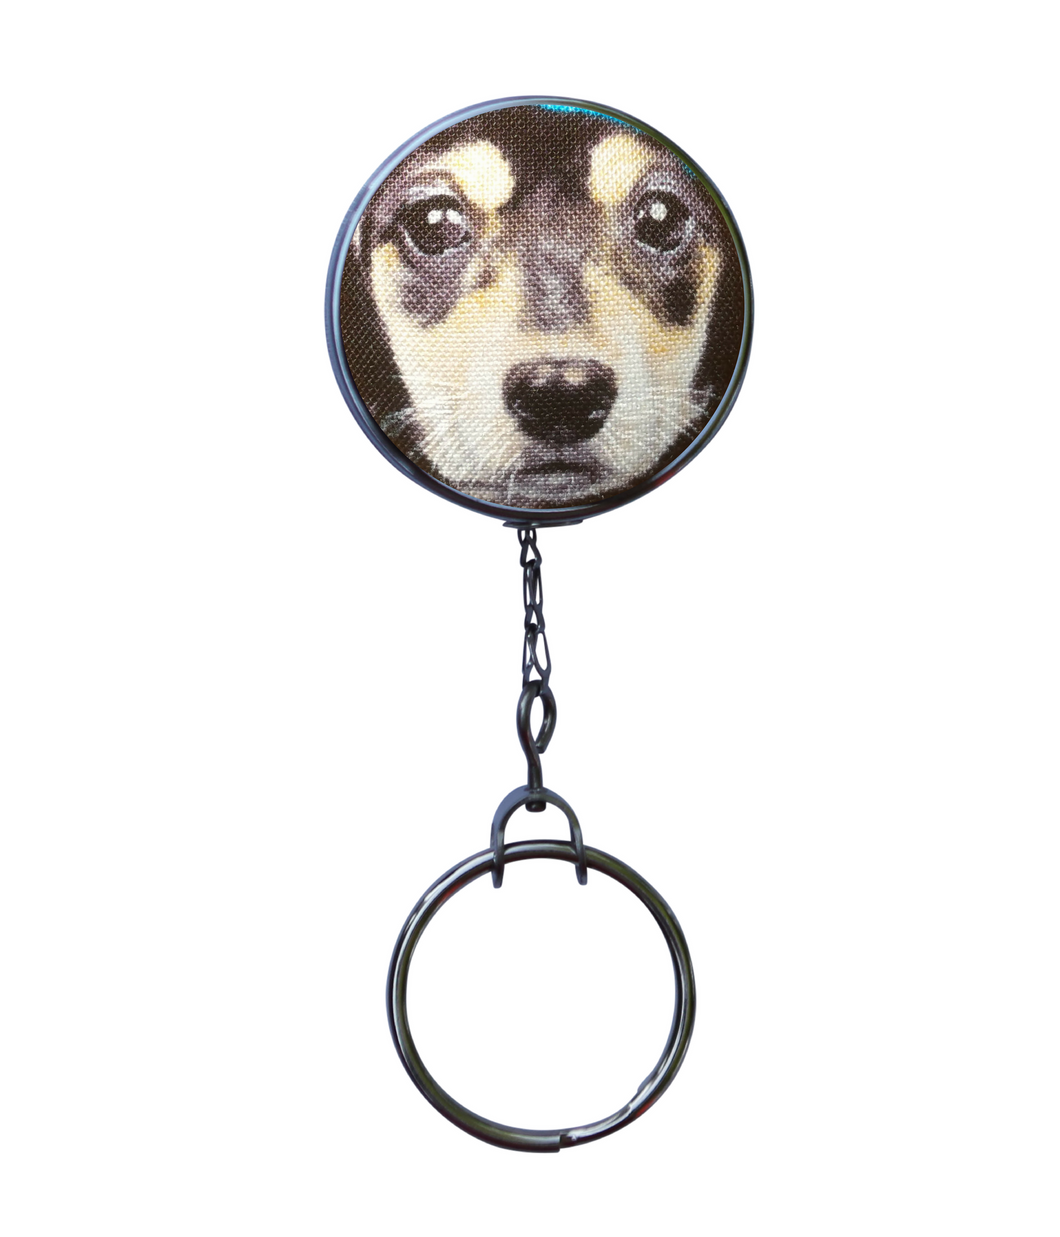 Retractable ID Badge Reel - Cute Beagle Dog